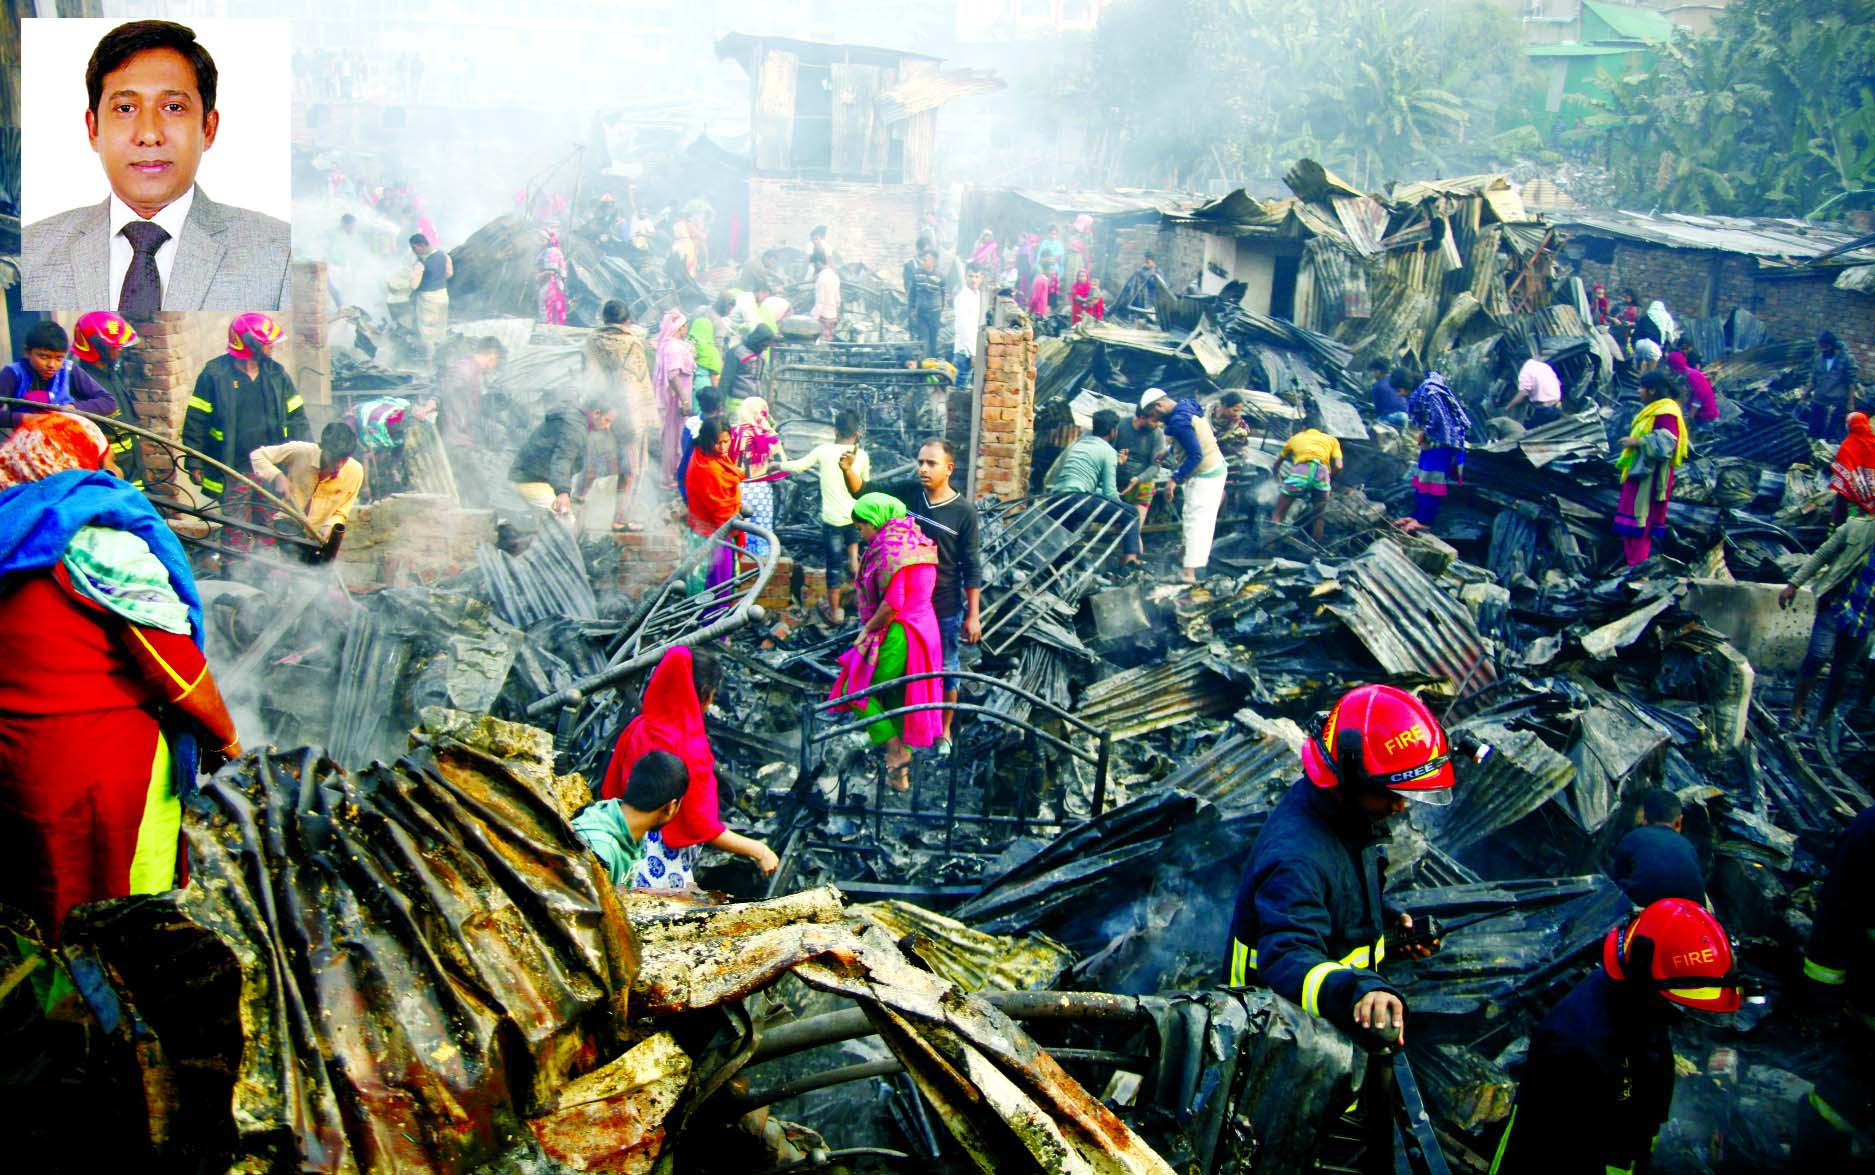 Negligence, ignorance causing fire incidents